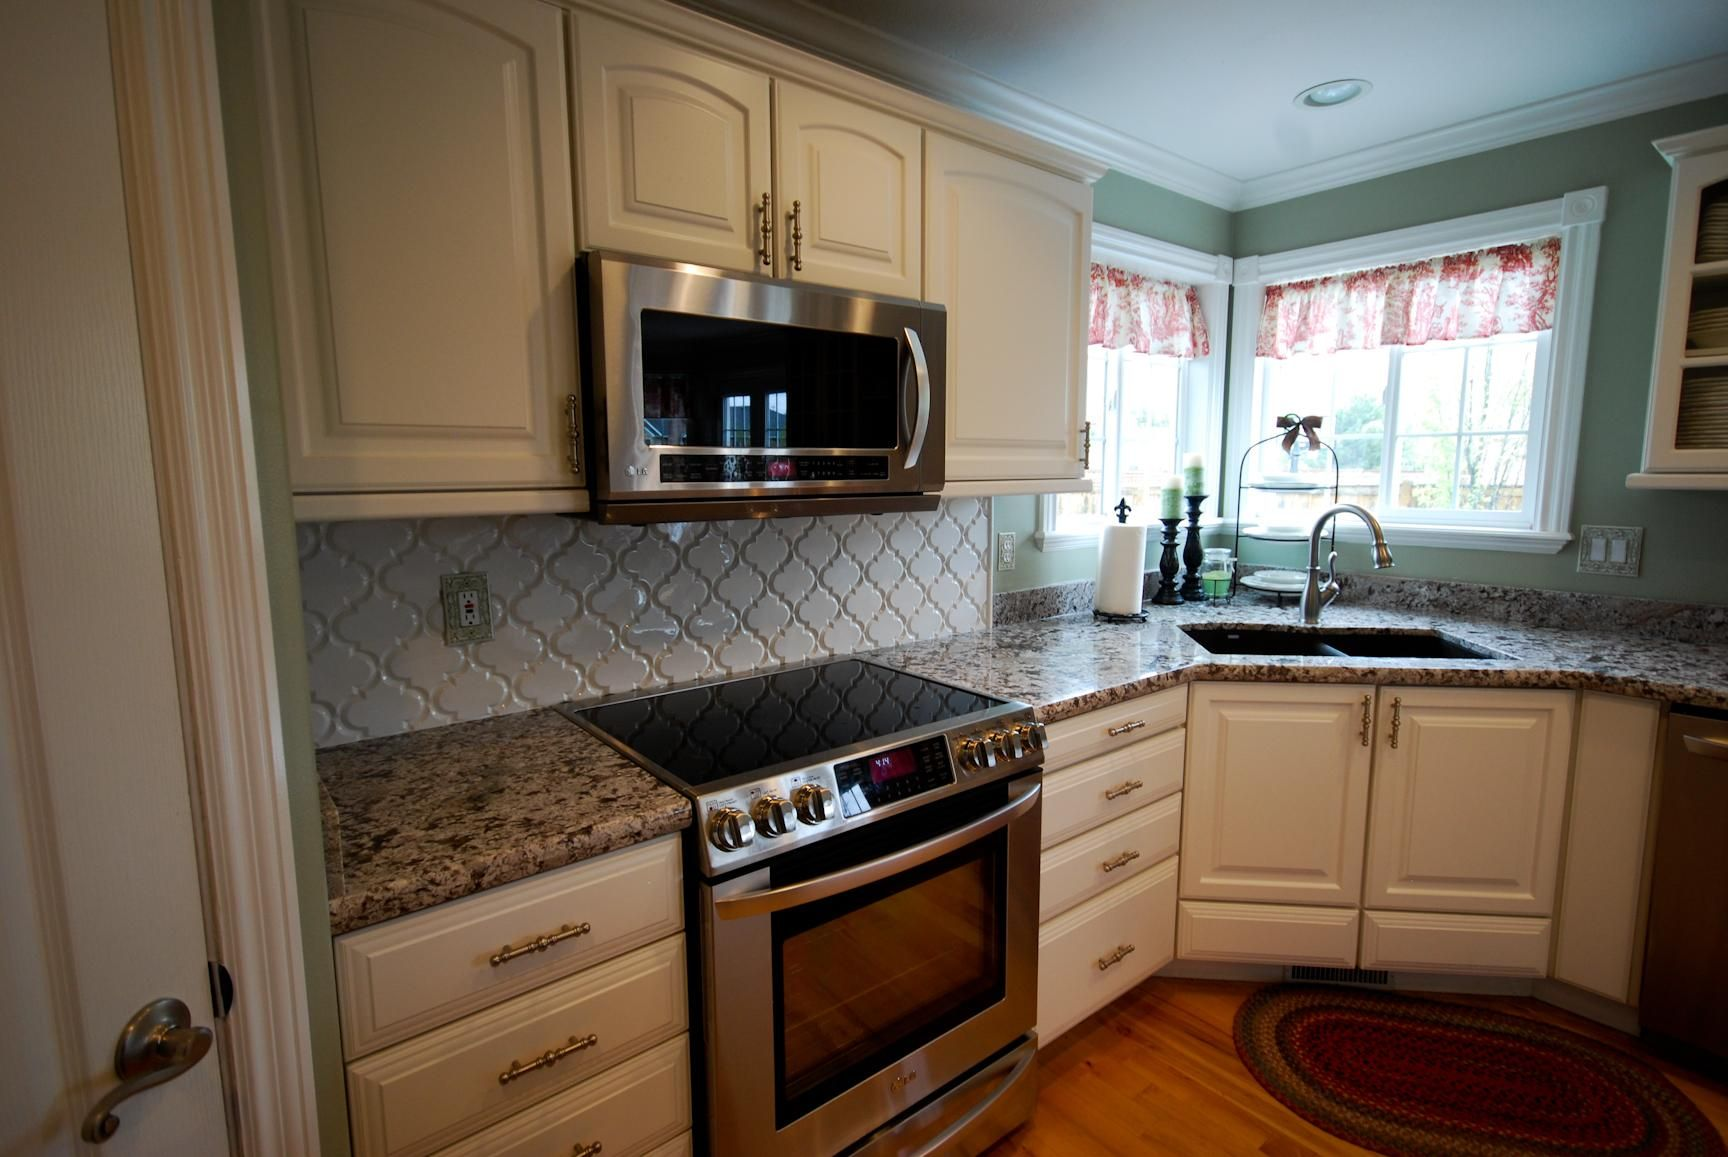 replacing kitchen countertops replacing kitchen countertops Replacing Kitchen Countertops Thinking about replacing the range in your kitchen consider